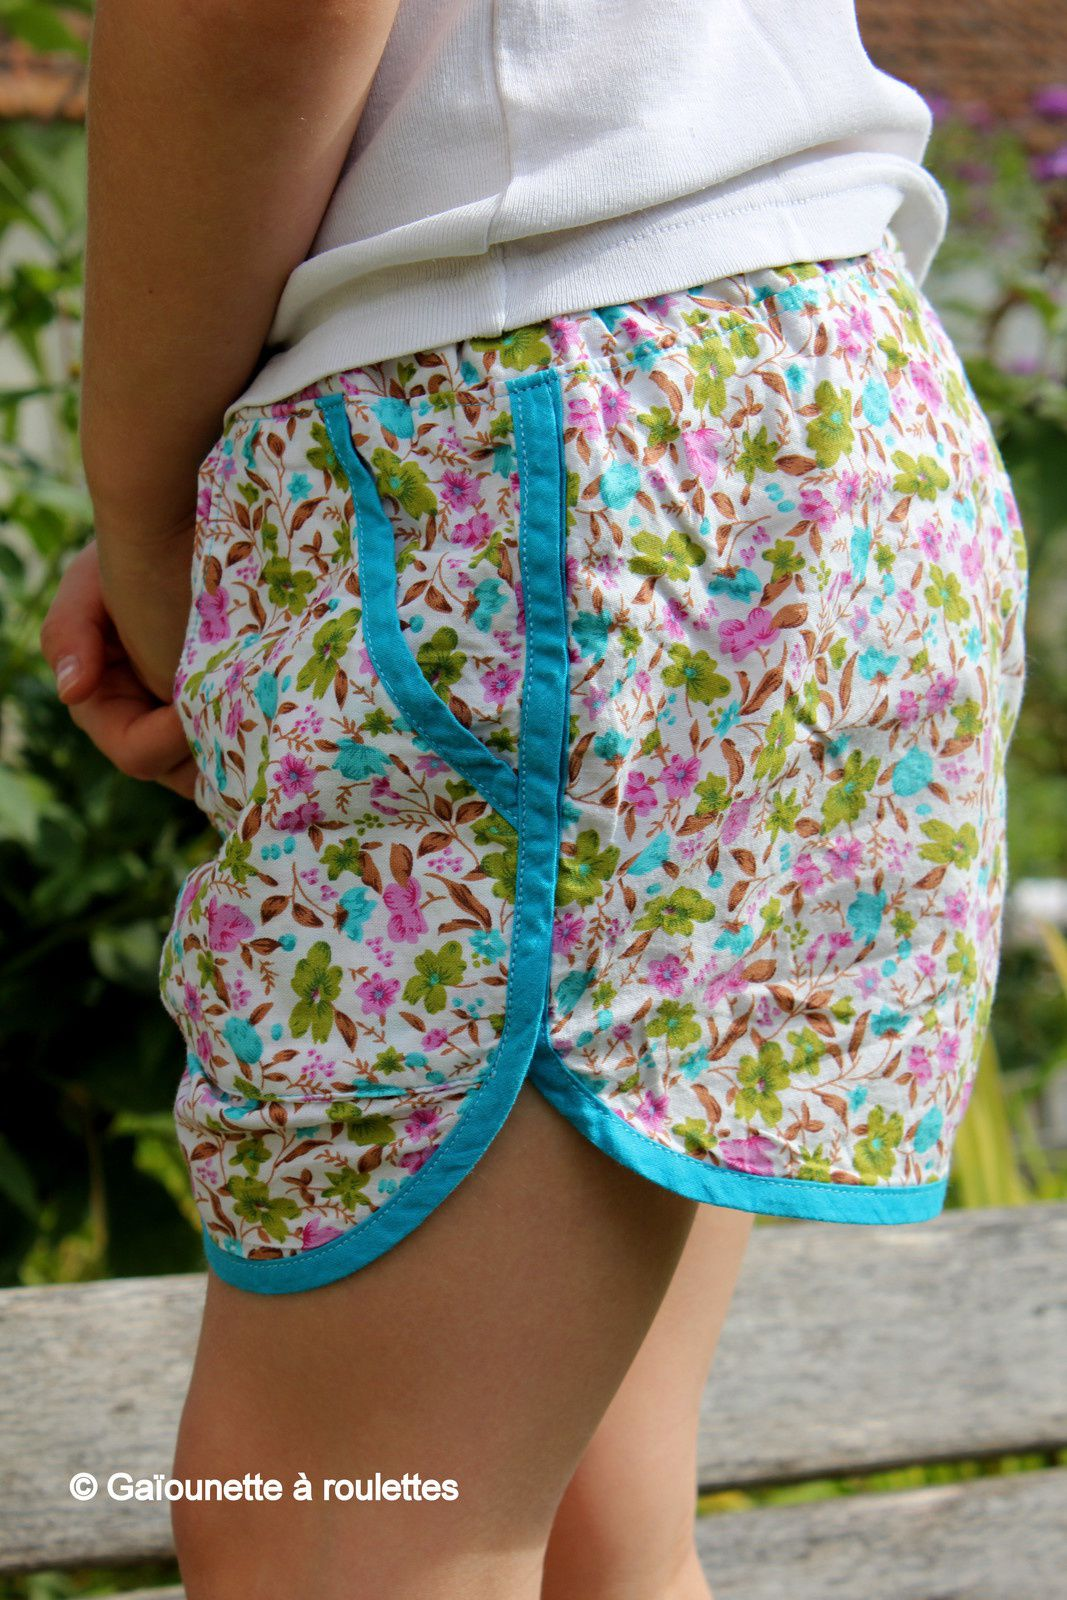 Du short, encore du short...